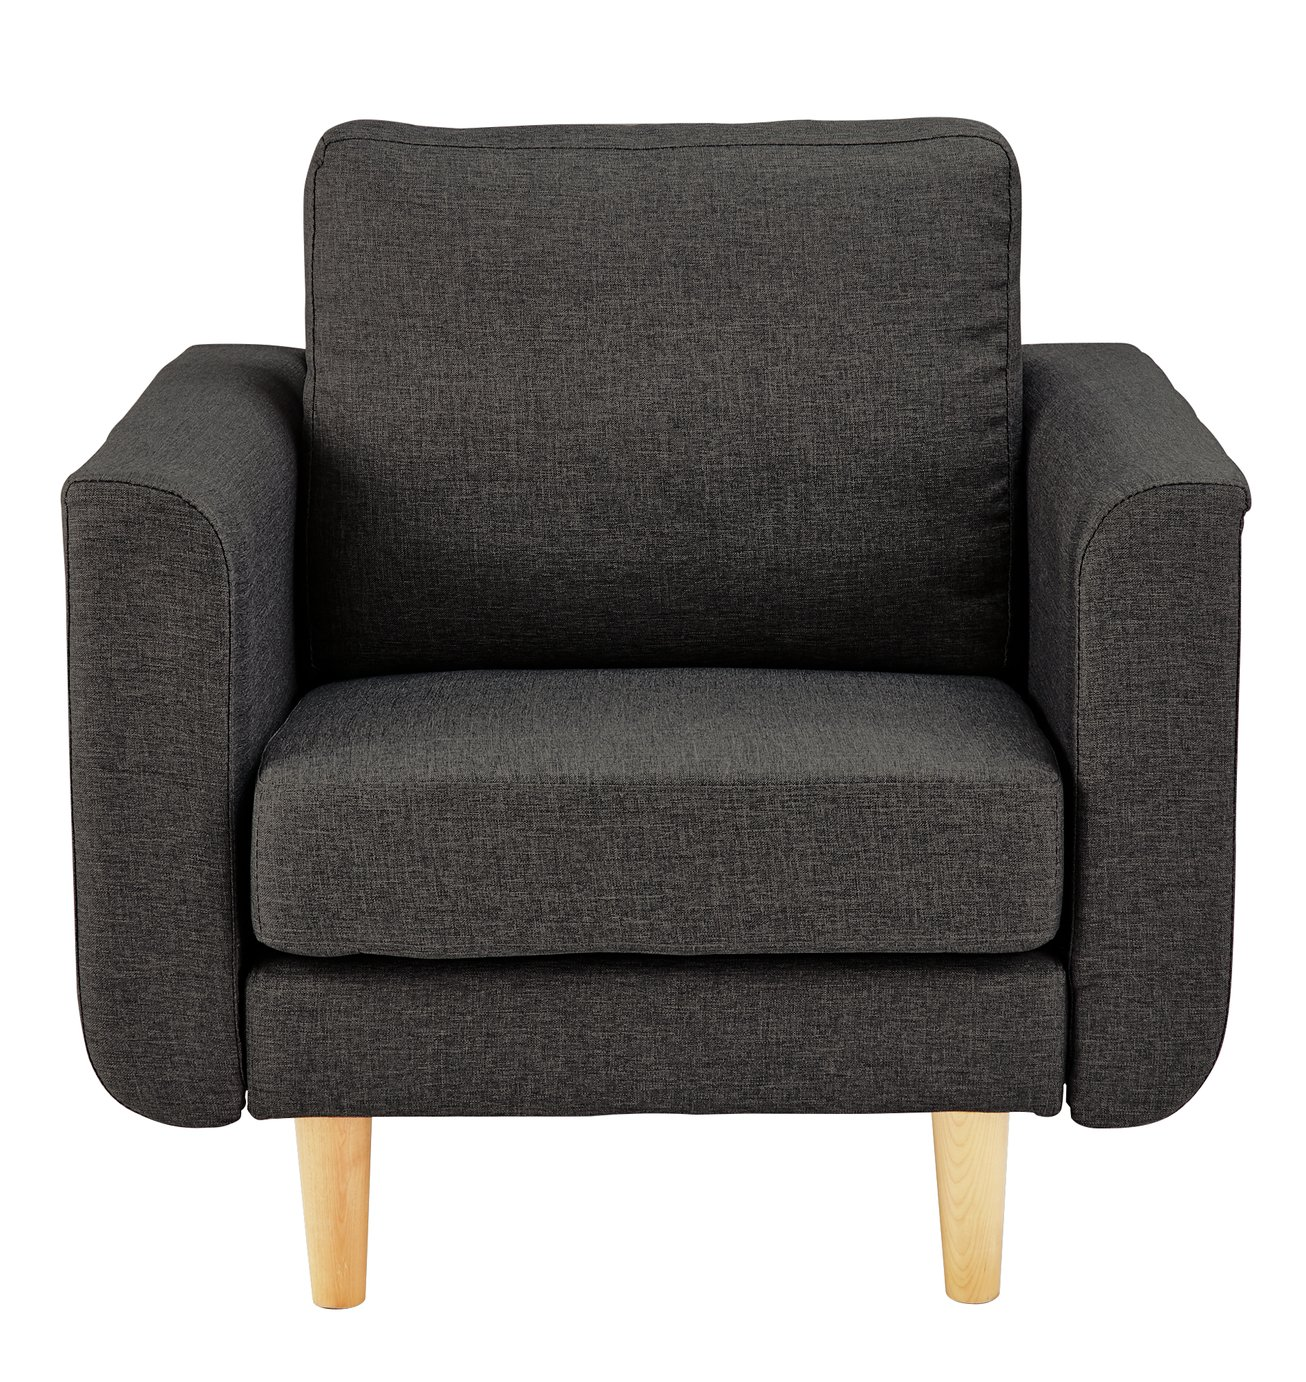 High Quality Armchairs And Chairs